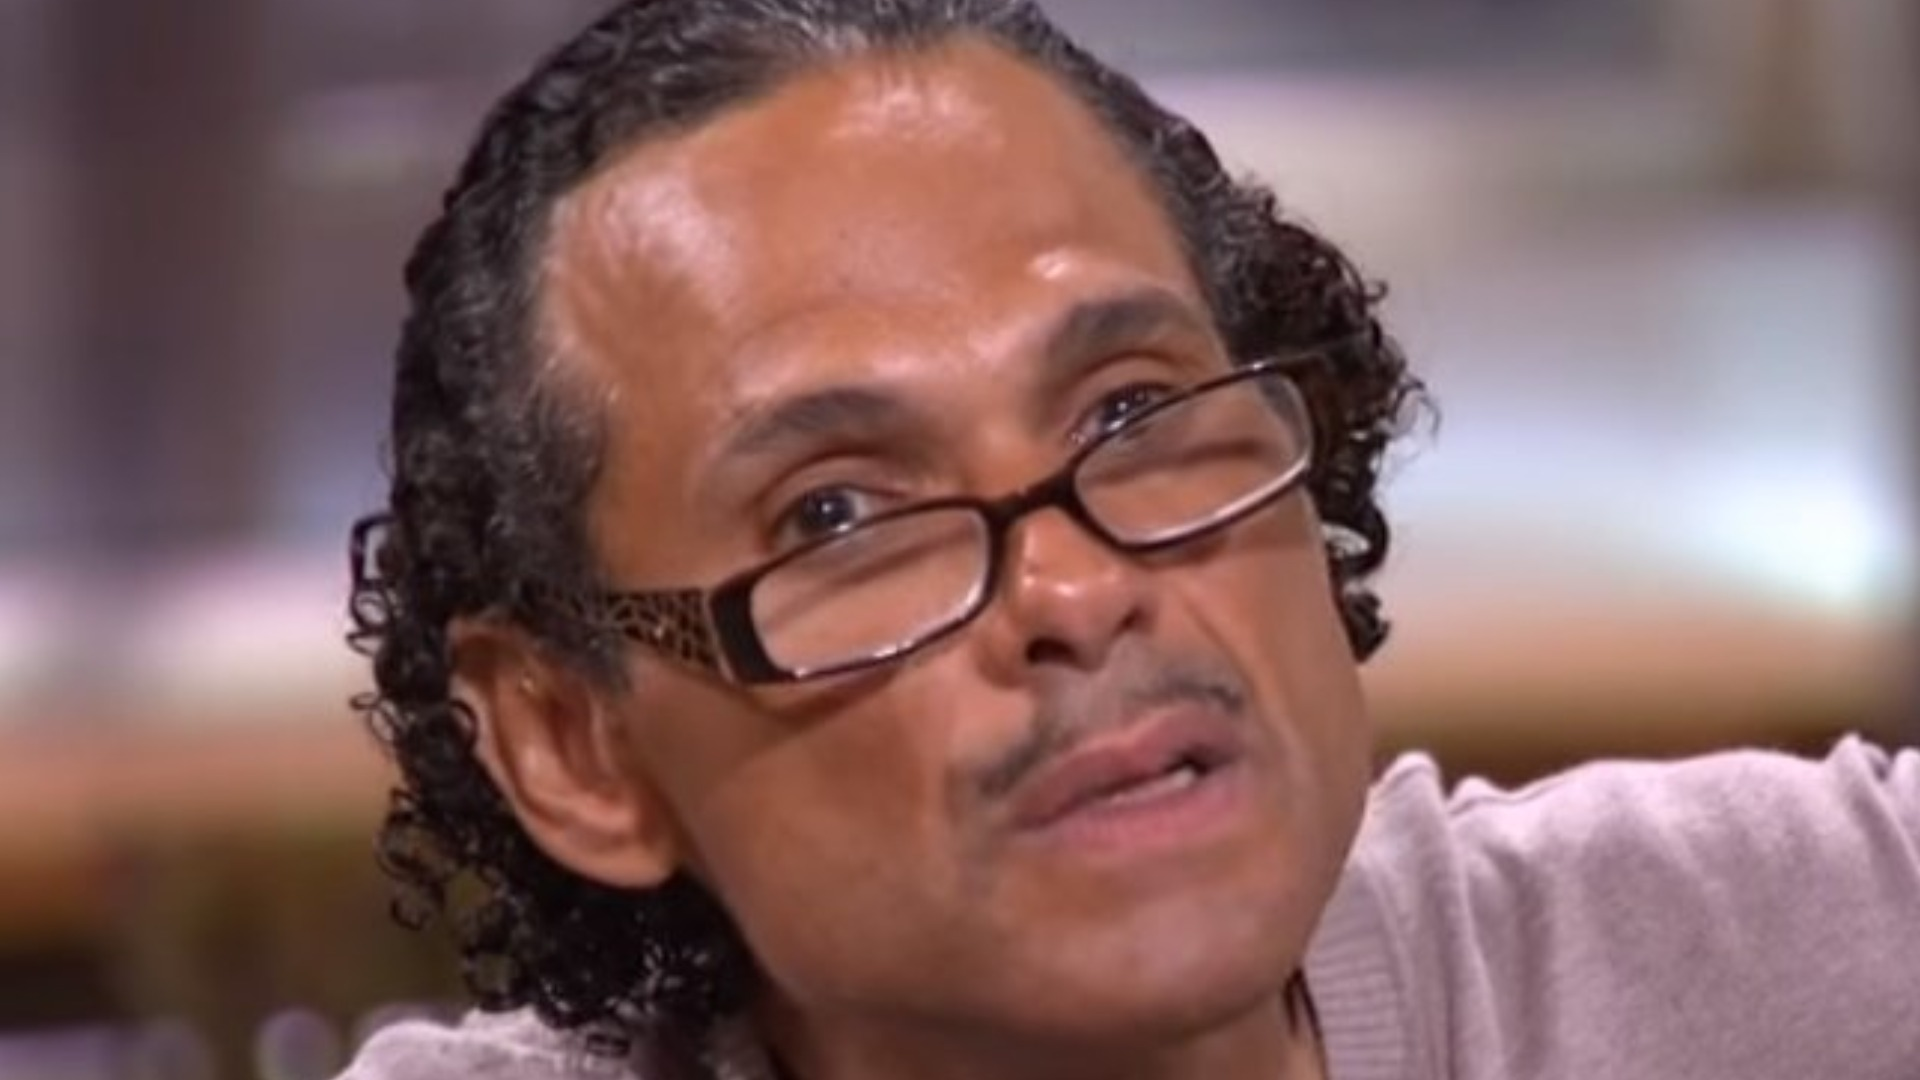 DeBarge's Story Is Really Depressing